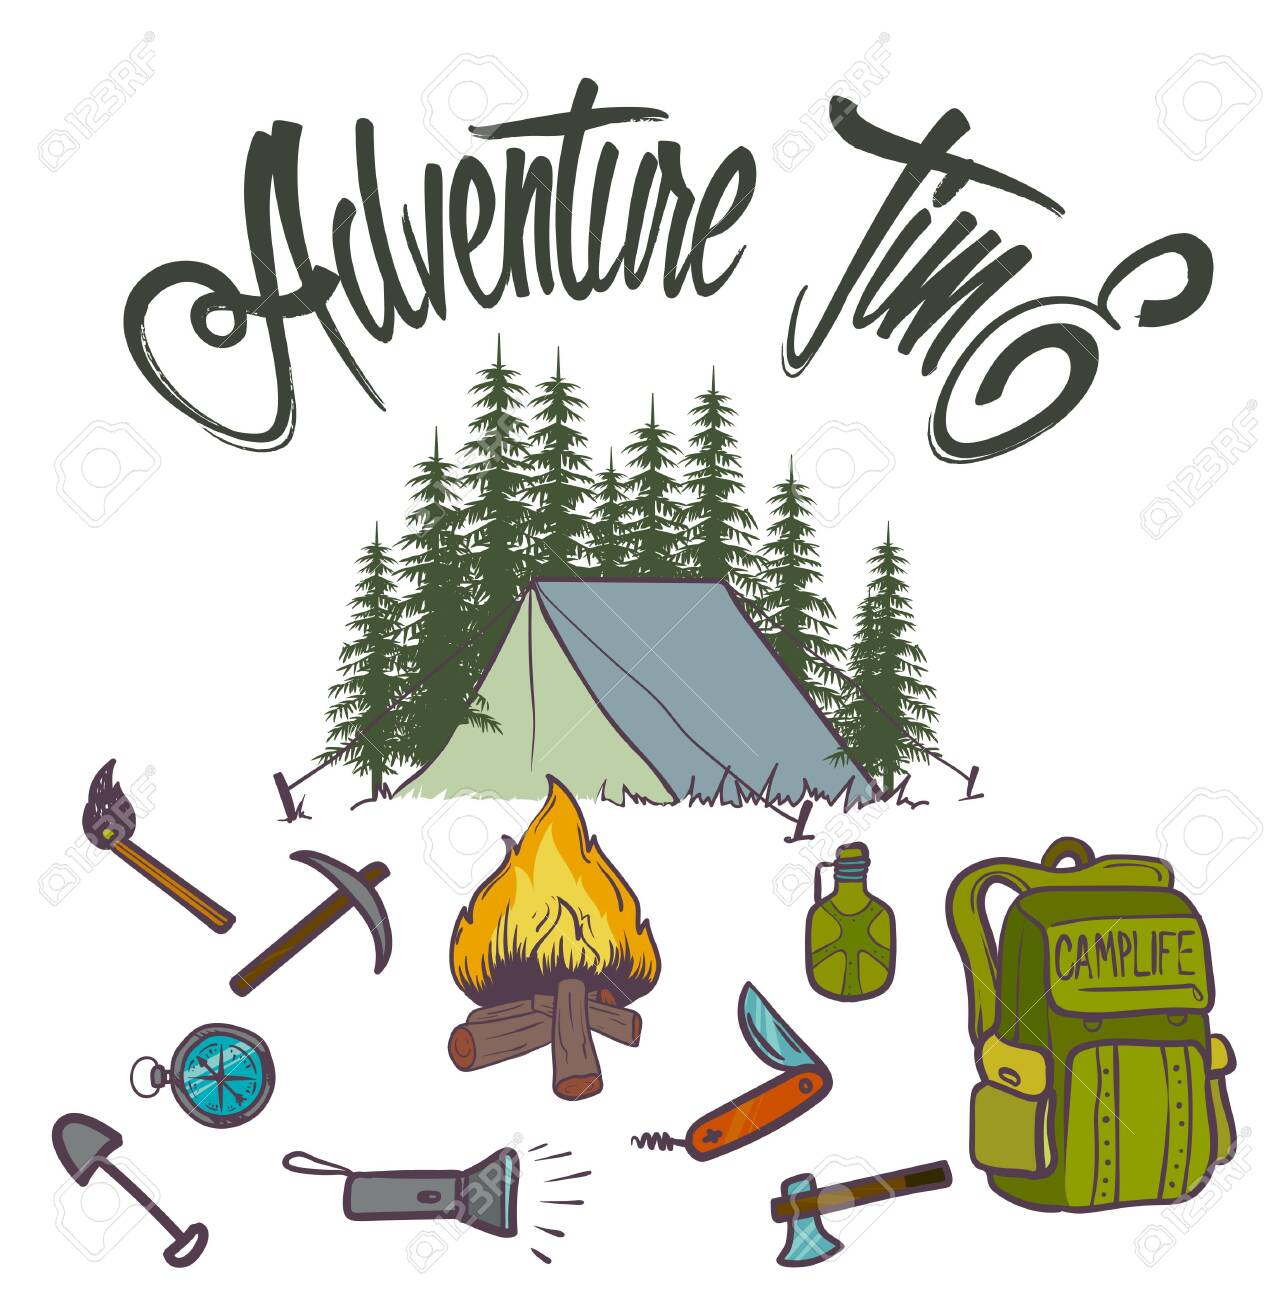 Hand drawn vector icon of orange camping flashlight. Tourist equipment. Graphic element in doodle style - 127956730